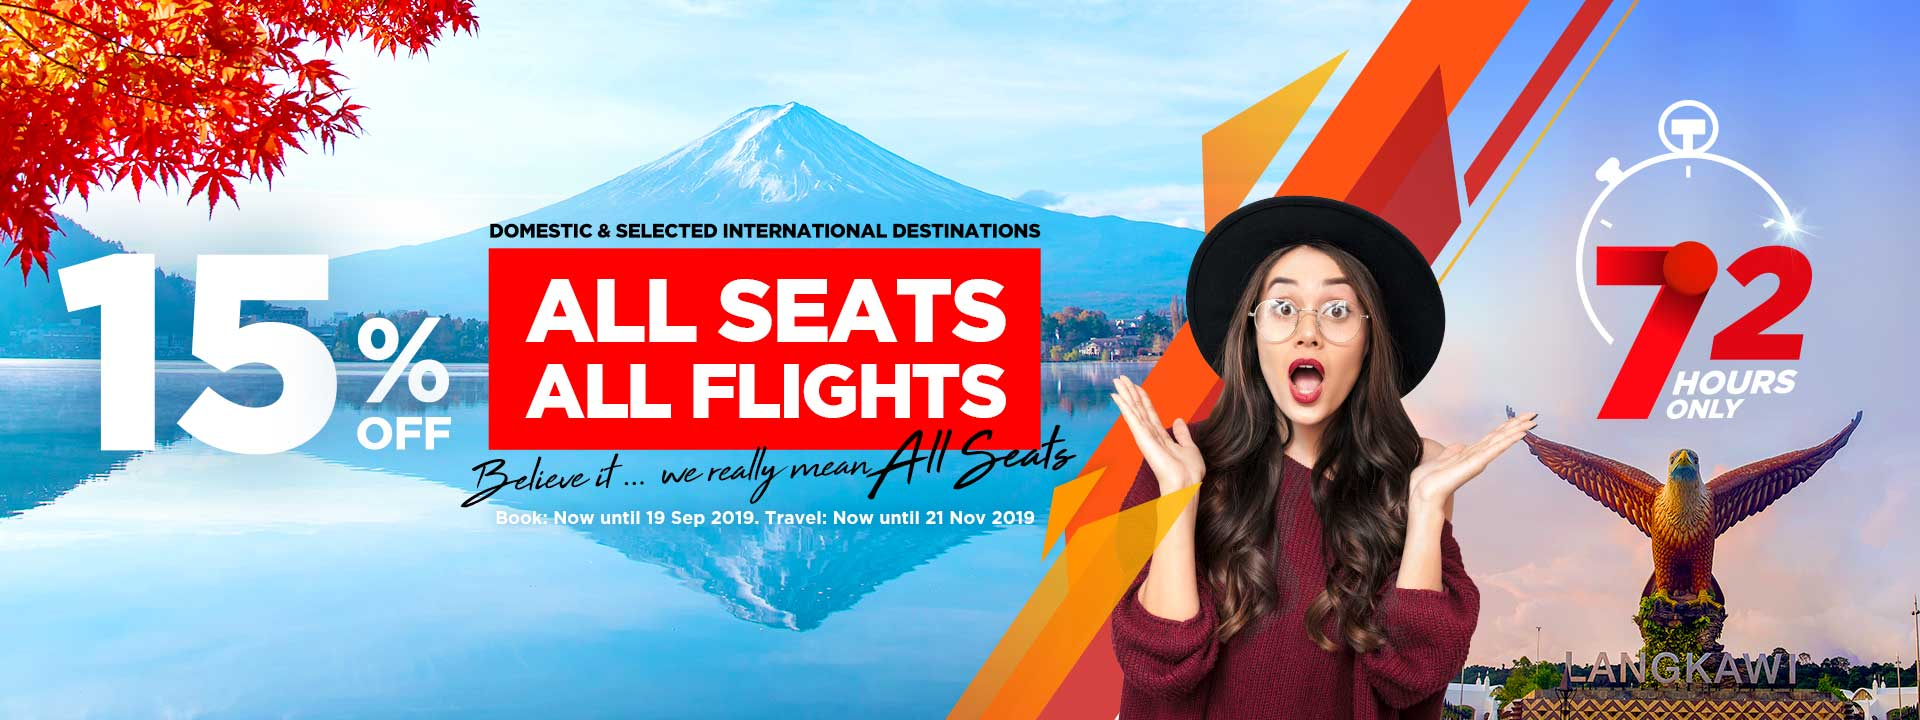 Malaysia Airlines 72 Hours Promo MH 72Hours Promo